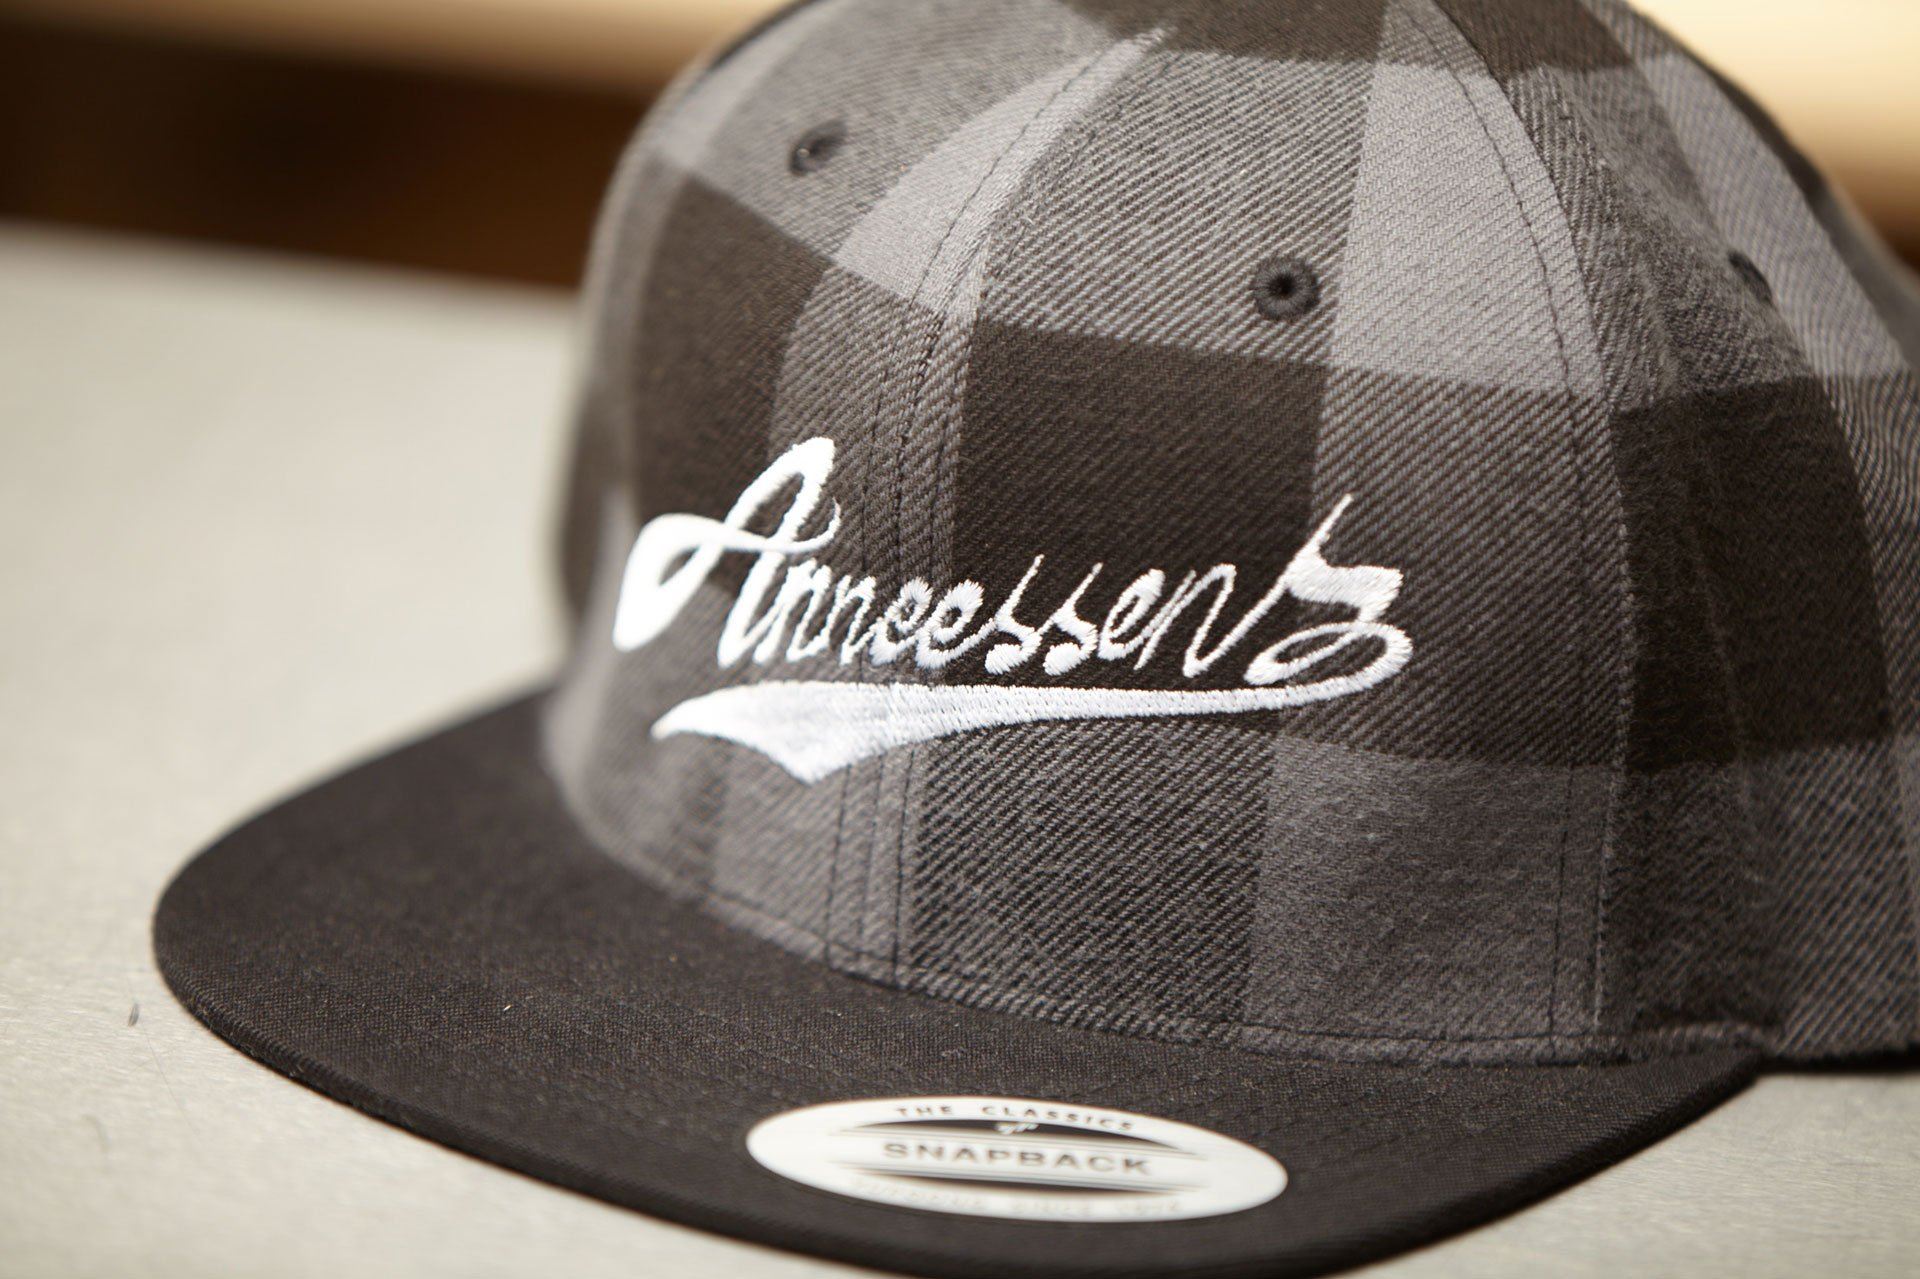 Anneessens Embroidery